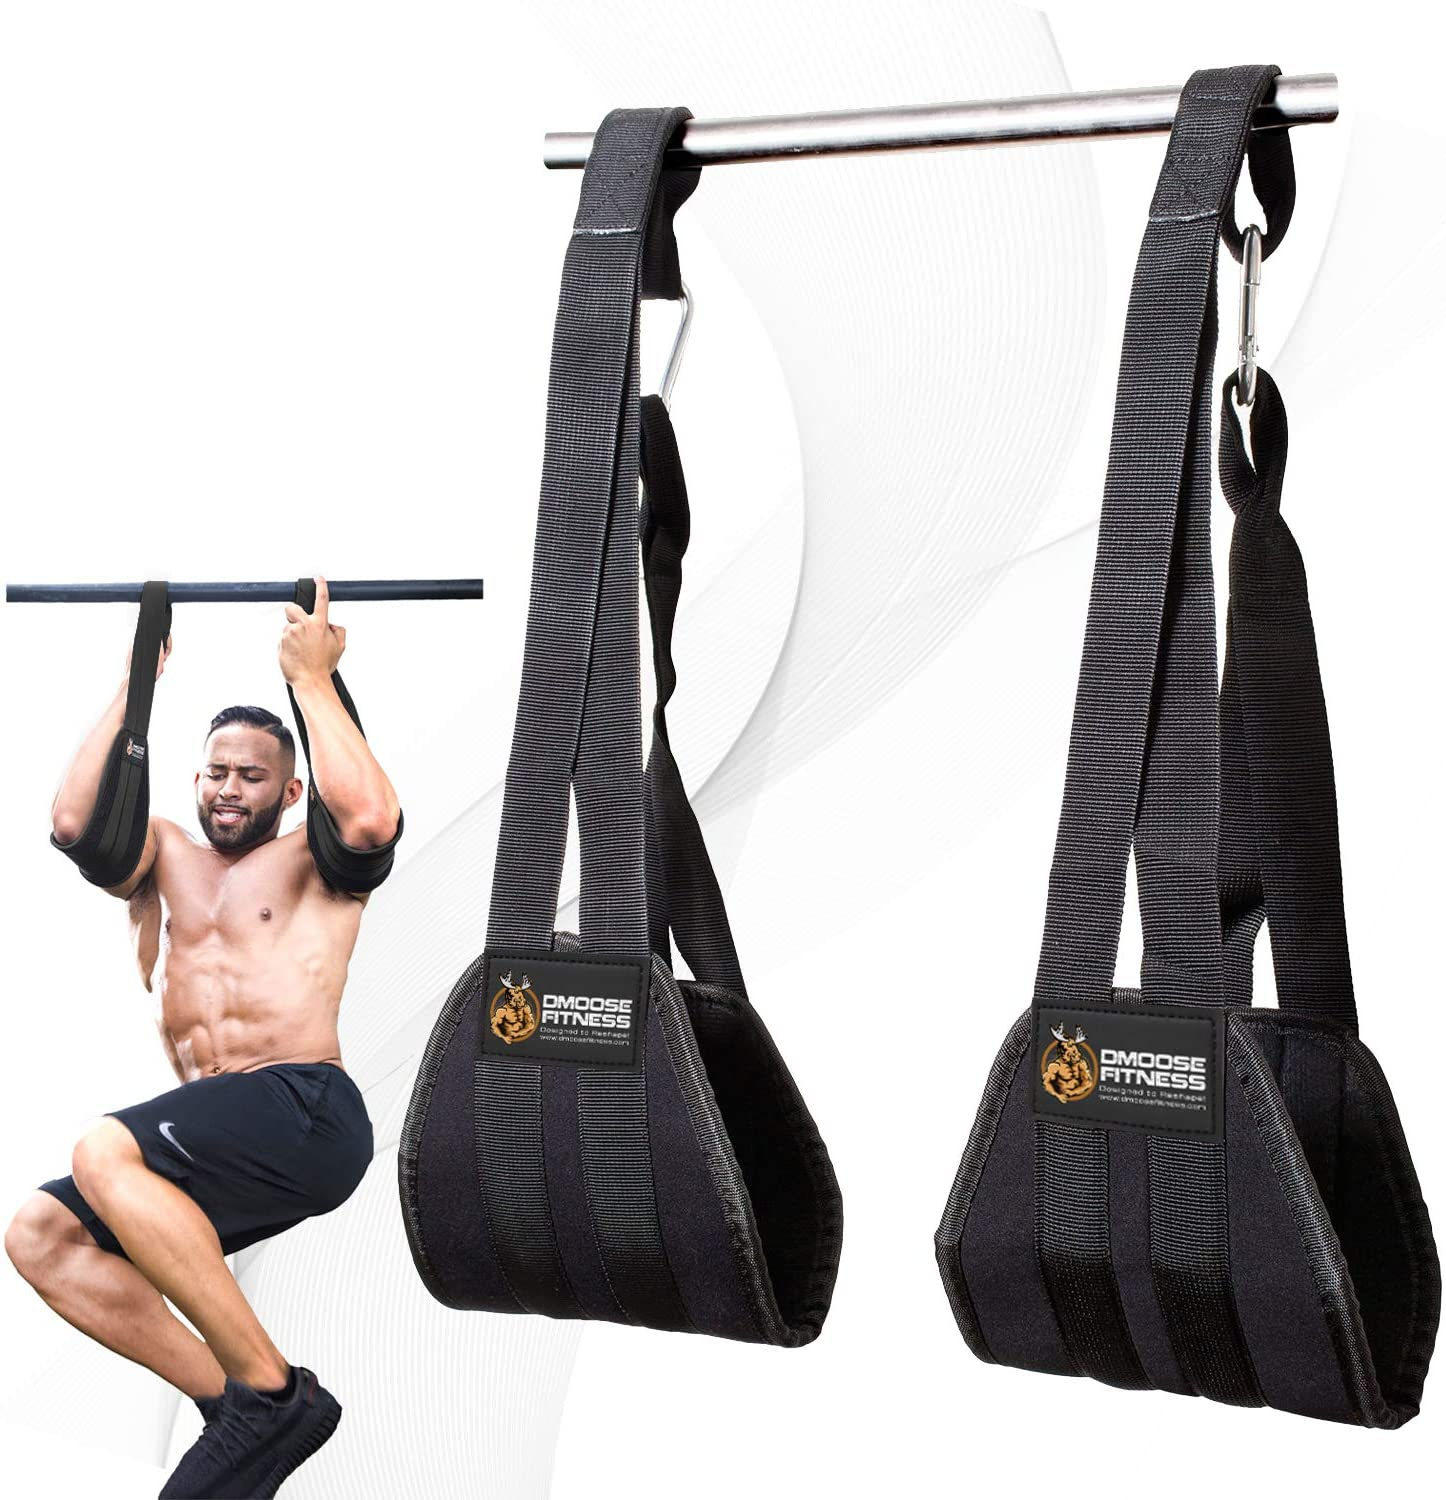 DMoose Fitness Hanging Ab Straps with man using them